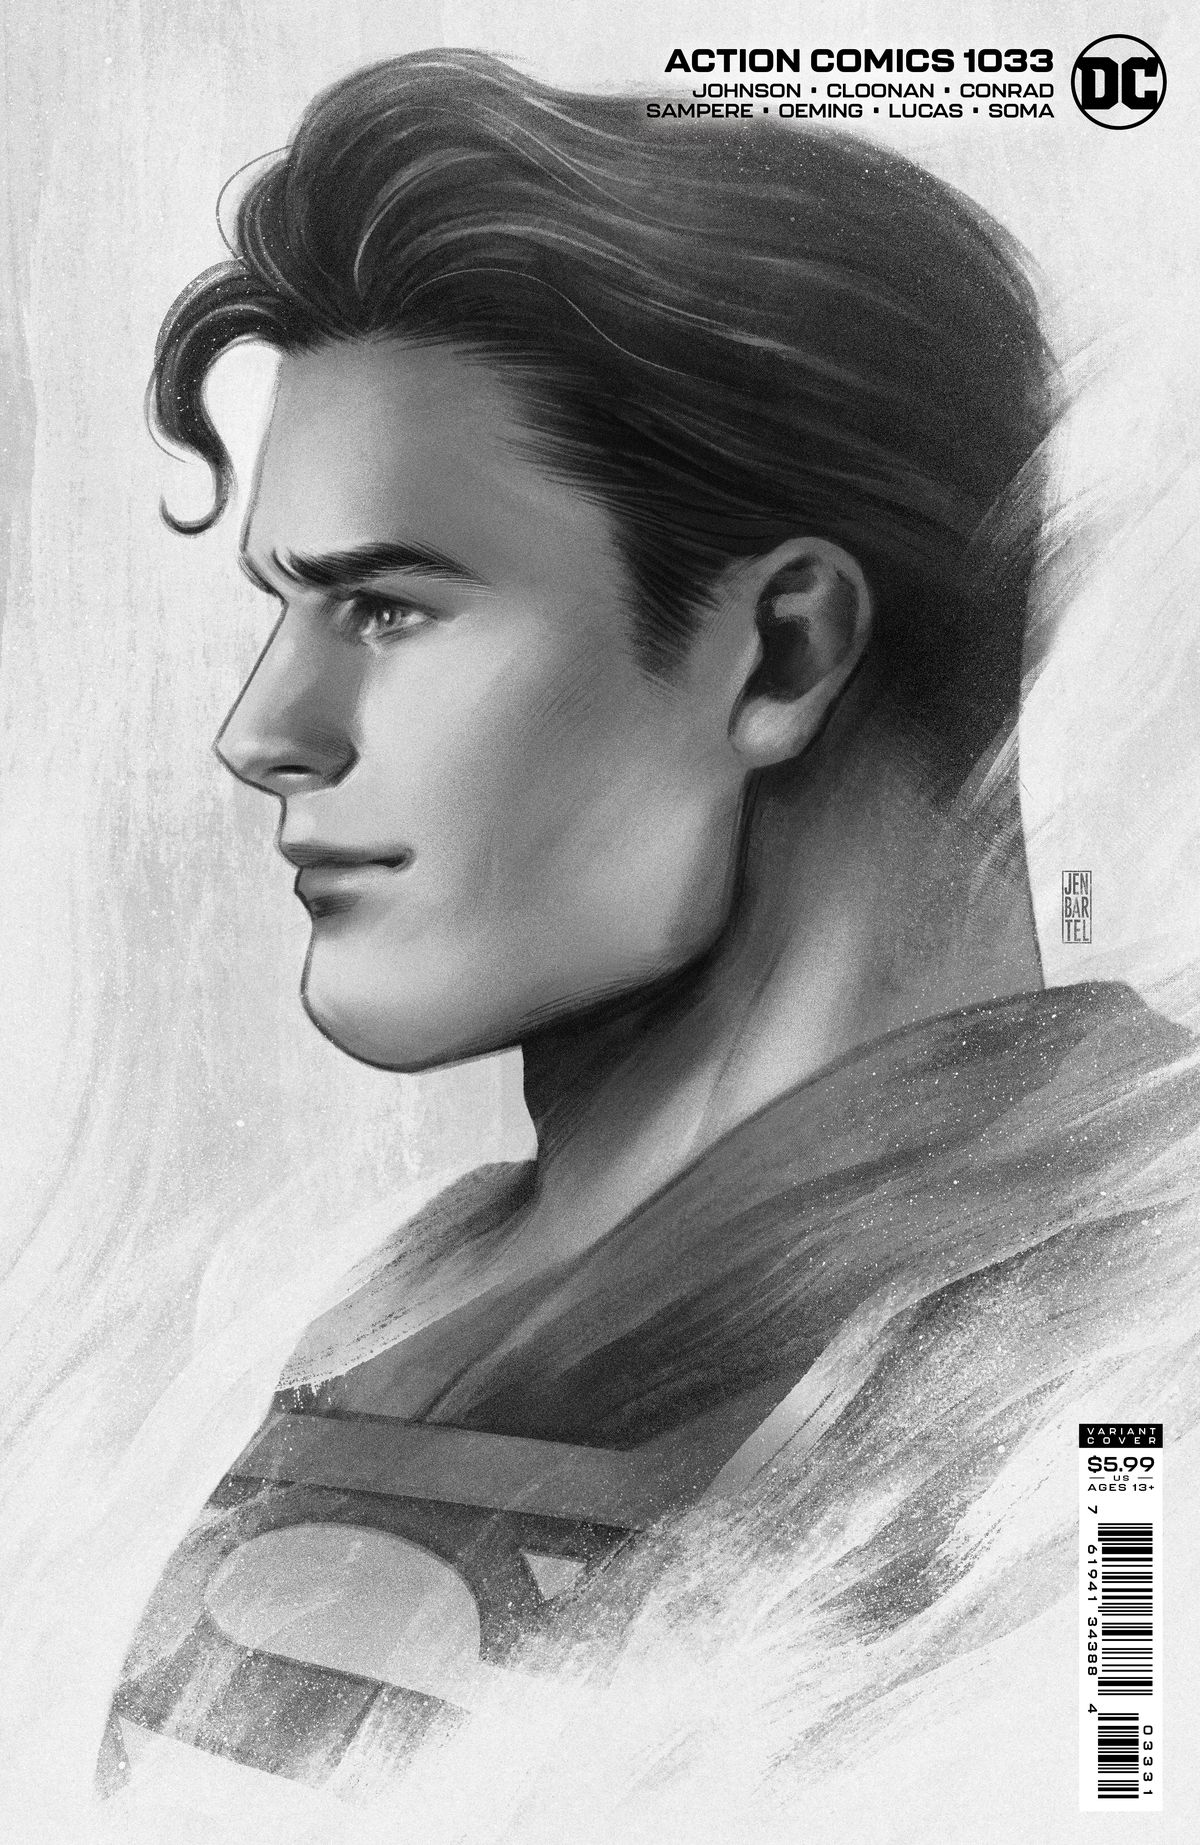 Image: A greyscale profile image of Clark Kent/Superman on the cover of Action Comics #1033, DC Comics (2021).